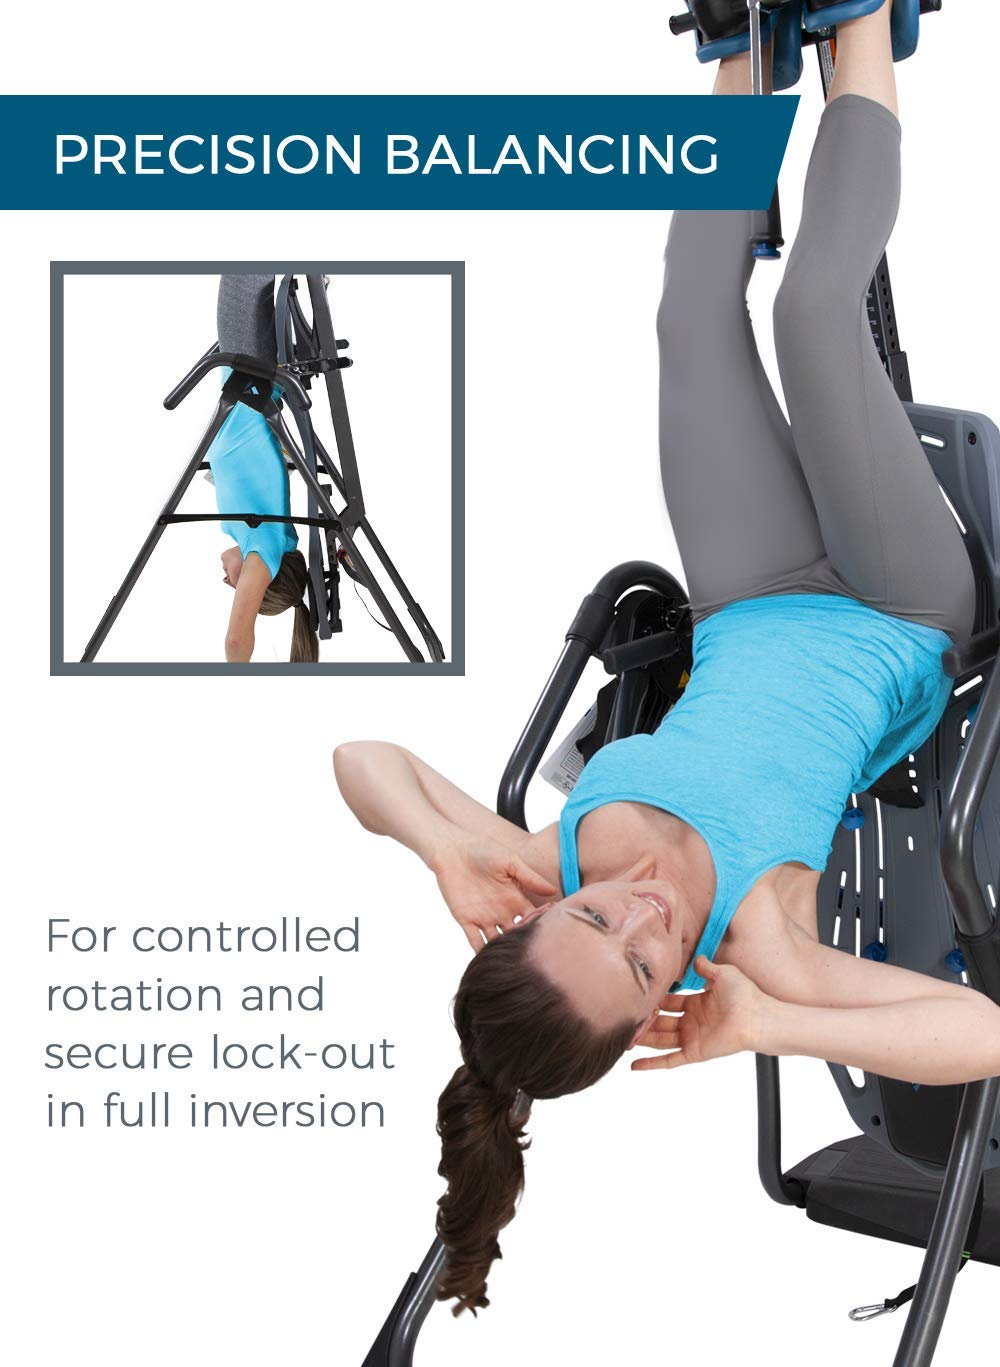 Back Pain Relief Kit Teeter FitSpine LX9 Inversion Table Deluxe Easy-to-Reach Ankle Lock 2019 Model FDA-Registered